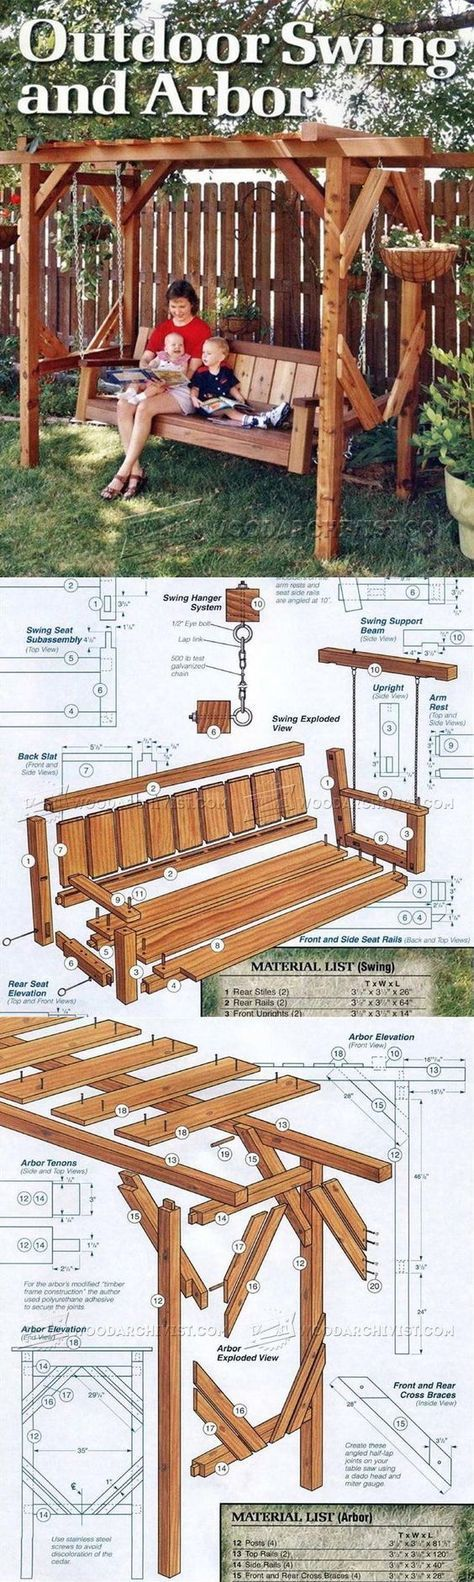 Outdoor Arbor Swing Plans - Outdoor Furniture Plans and Projects | WoodArchivist.com